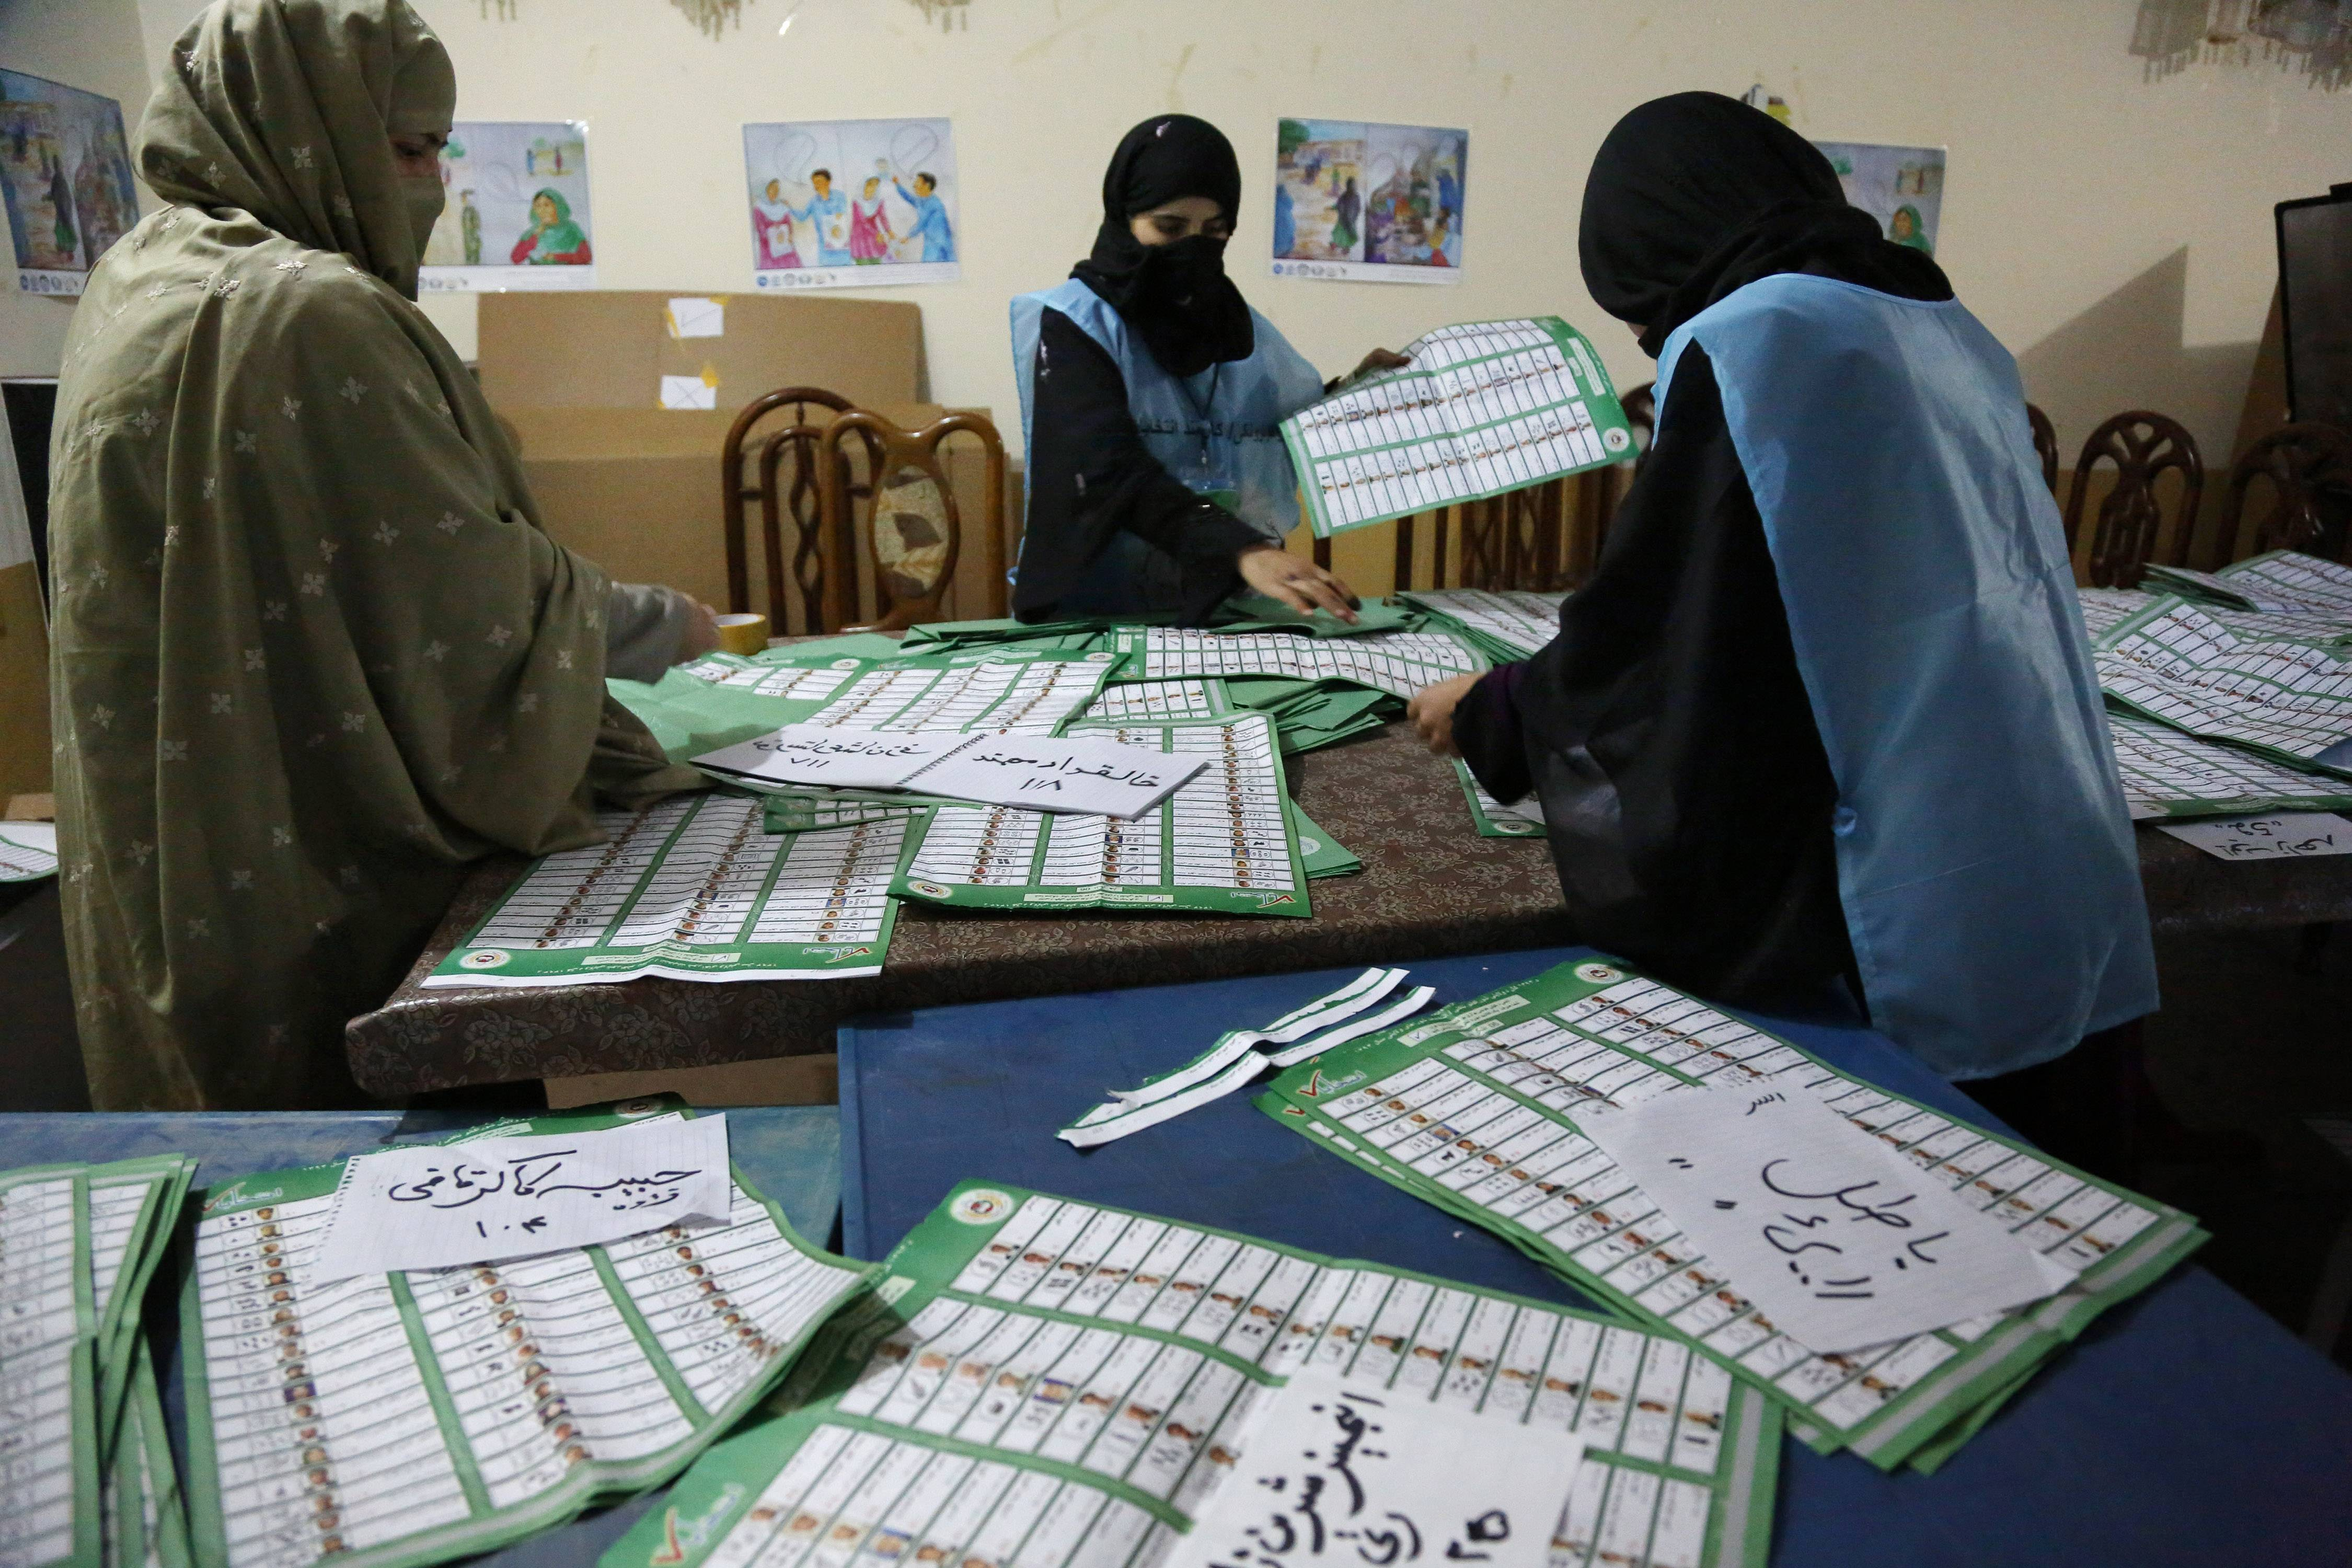 Afghan election workers counts ballots at a polling station in Jalalabad, east of Kabul, Afghanistan, Saturday.